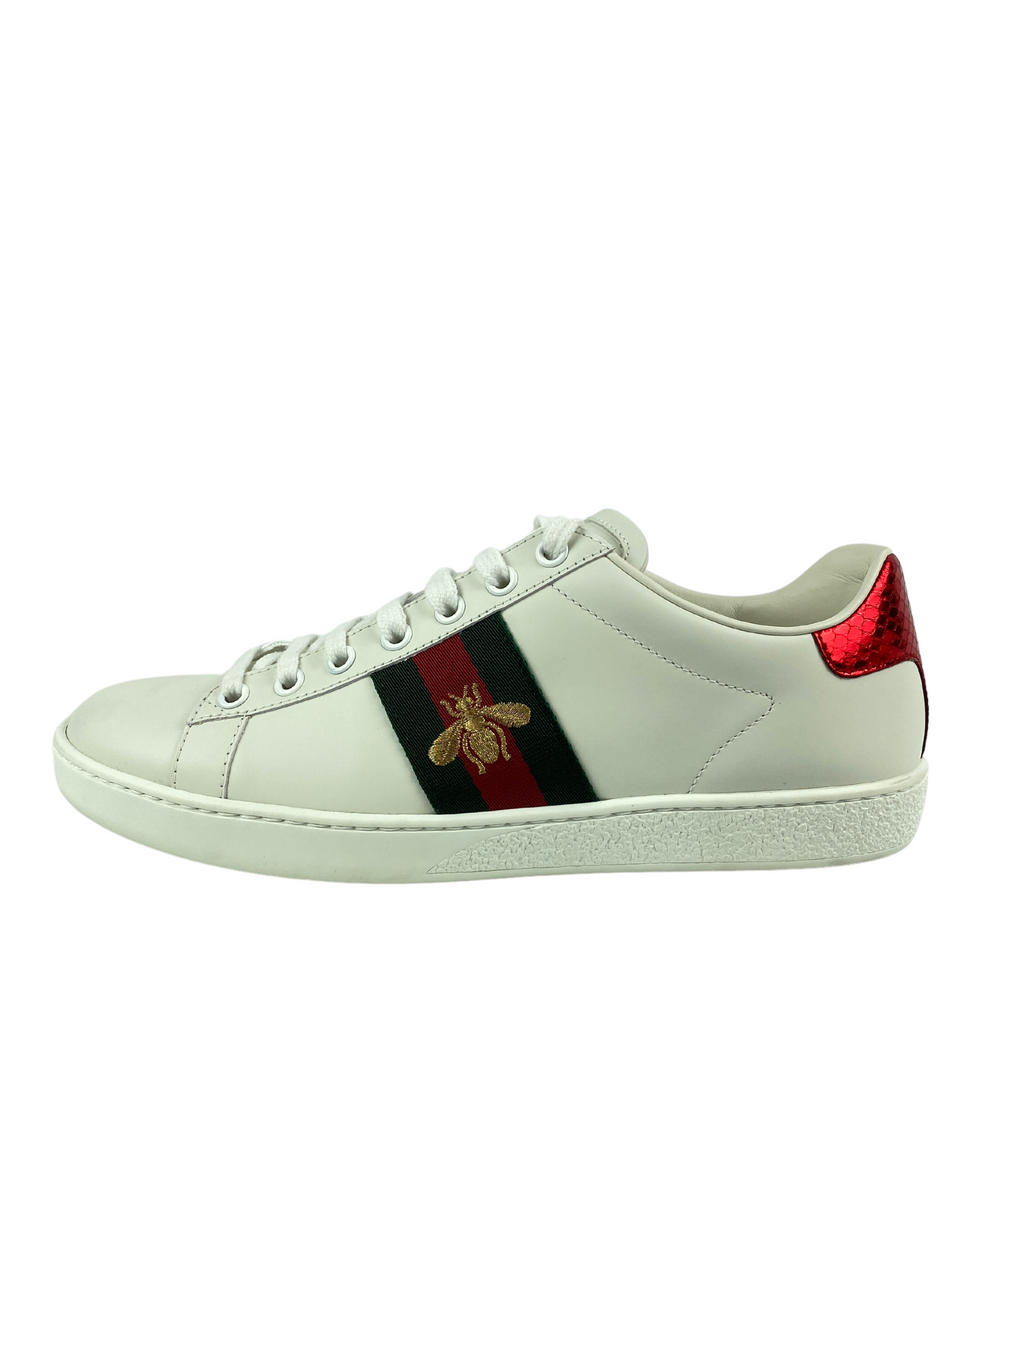 GUCCI - ACE BEE SNEAKERS - SIZE 38 - NEW IN BOX